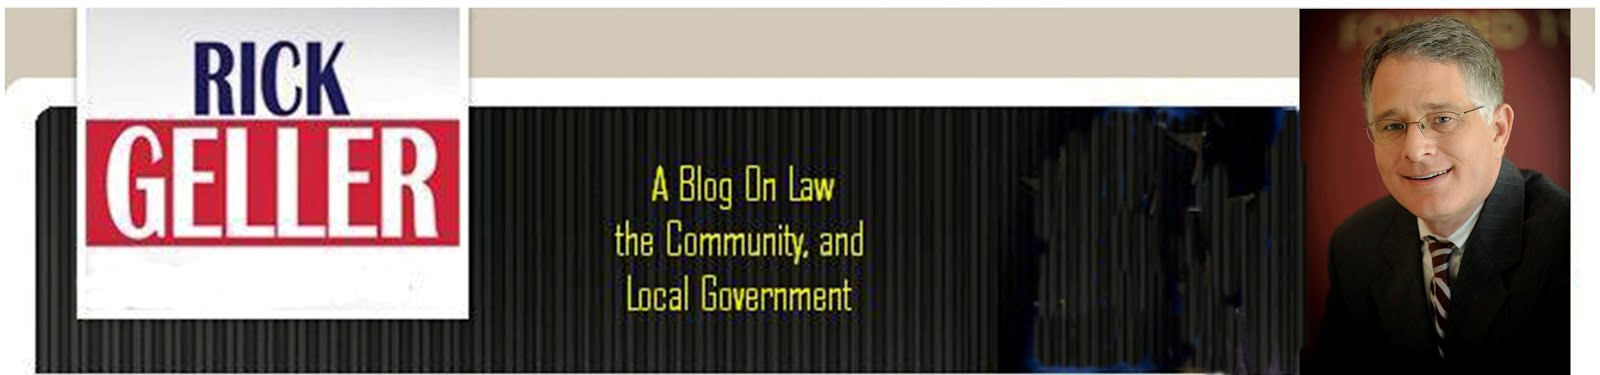 Rick Geller on Law and Local Government